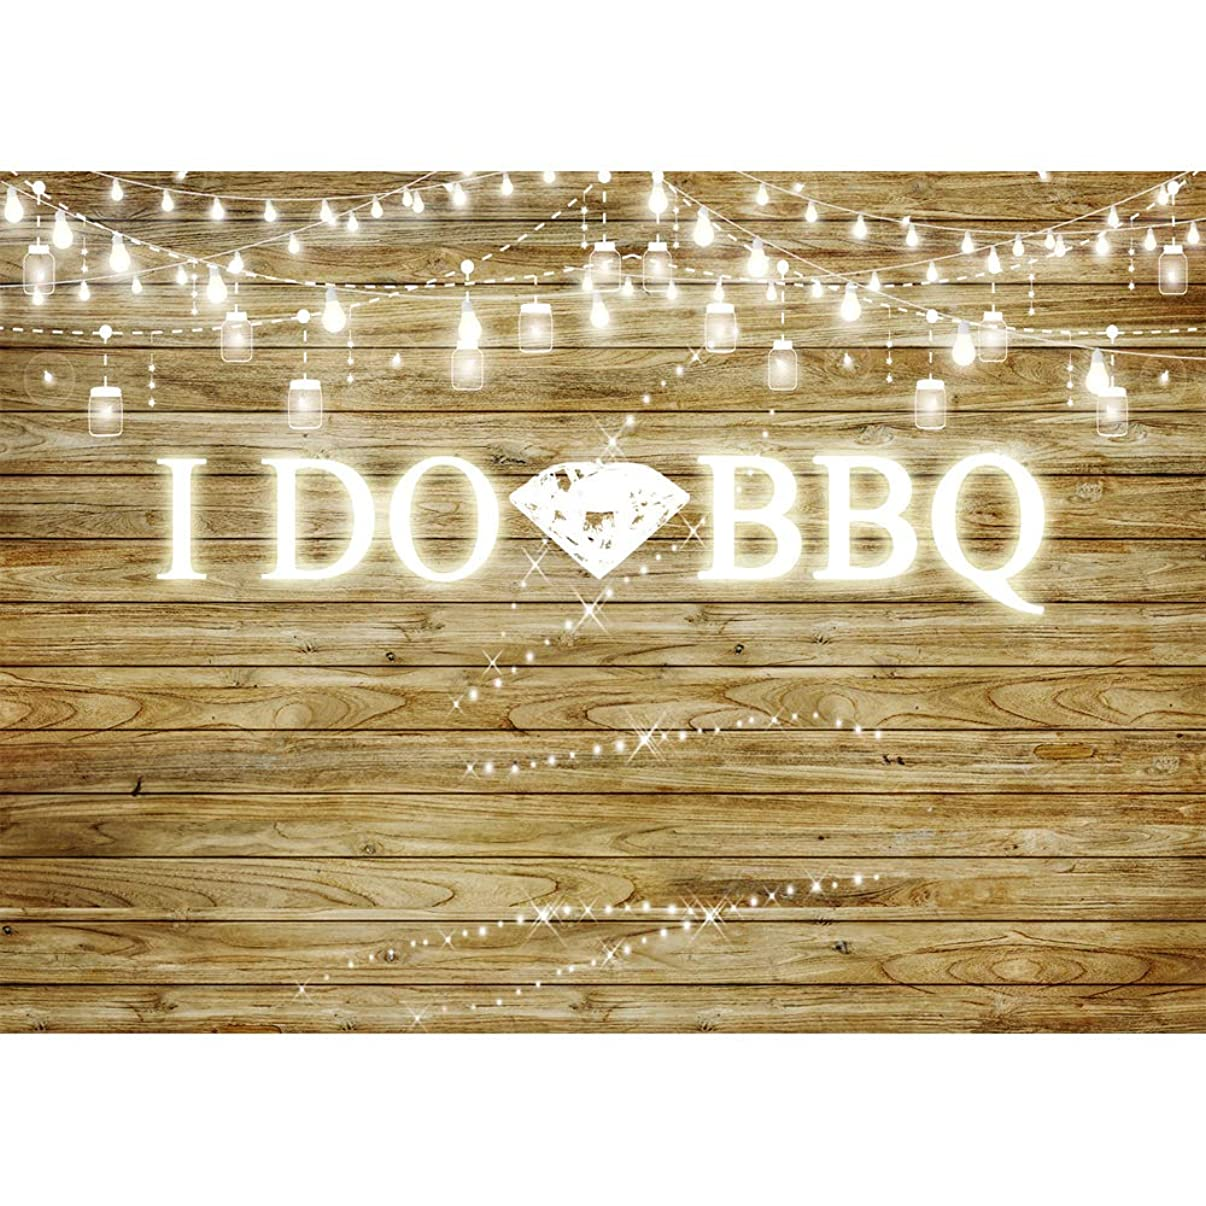 I Do BBQ Backdrops for Photography 7x5 Vinyl Background Rustic Wooden Floor Lighting Diamond Rings for Wedding Photocall Birthday Party Décor Photography Background Banner